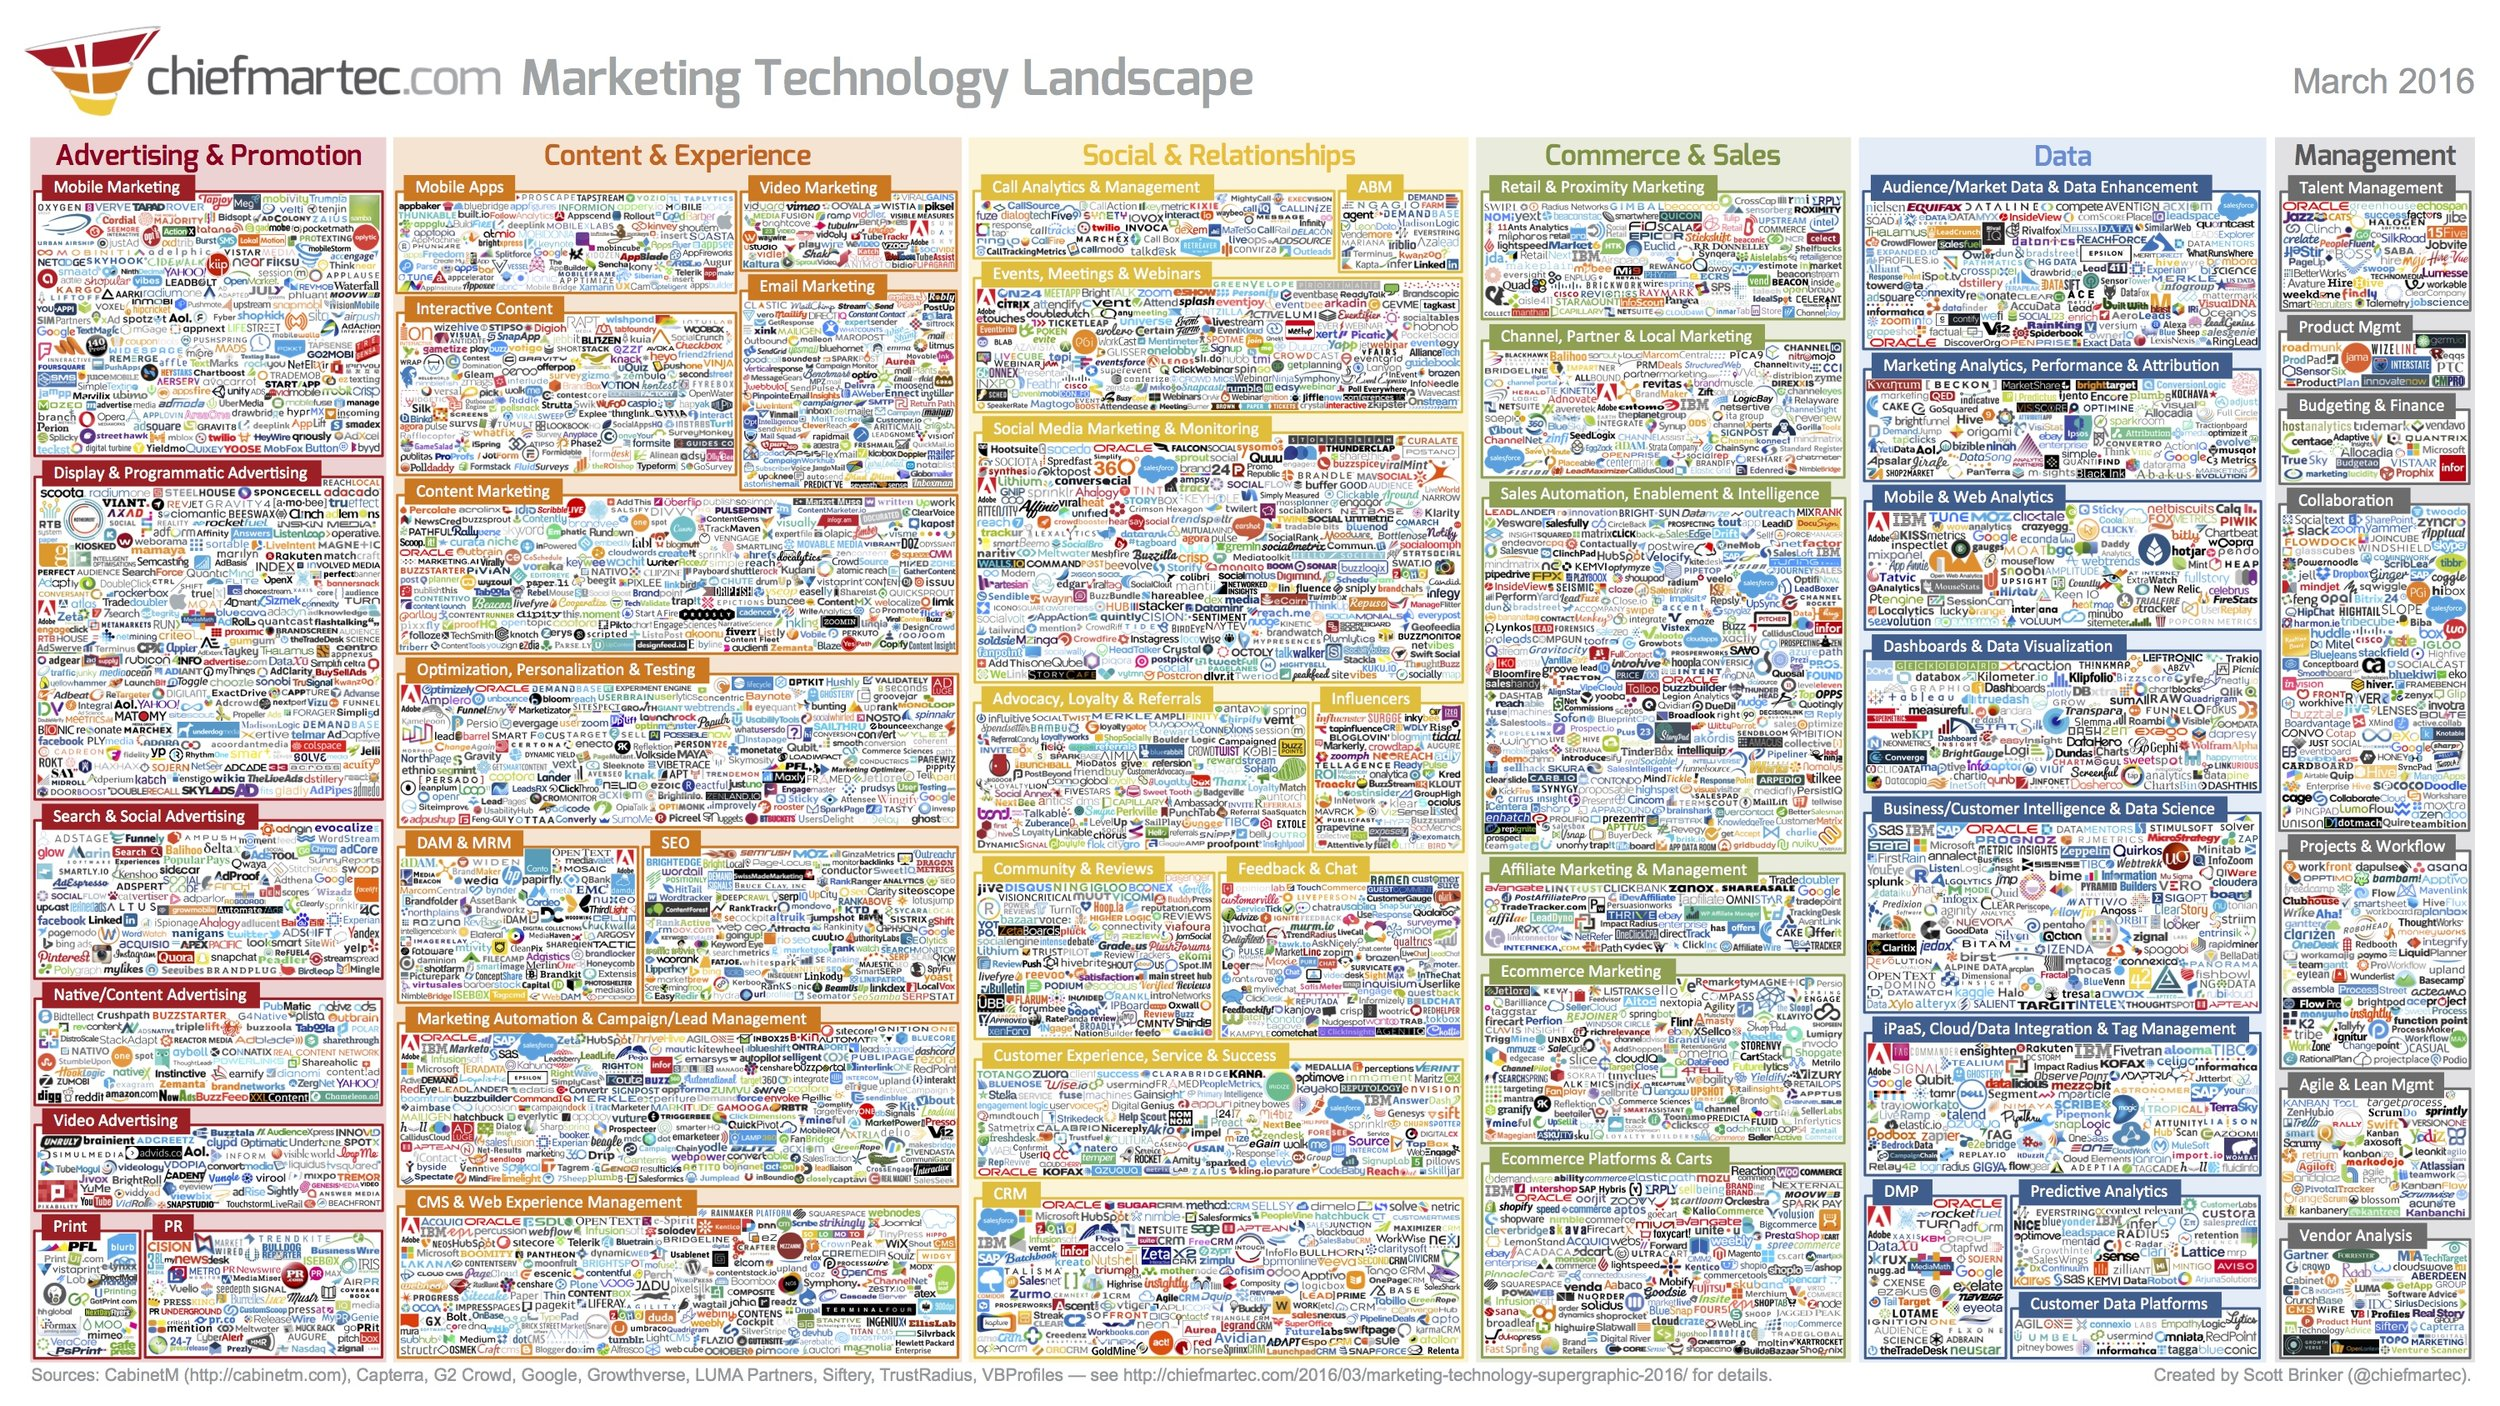 marketing_technology_landscape_2016_3000px.jpg